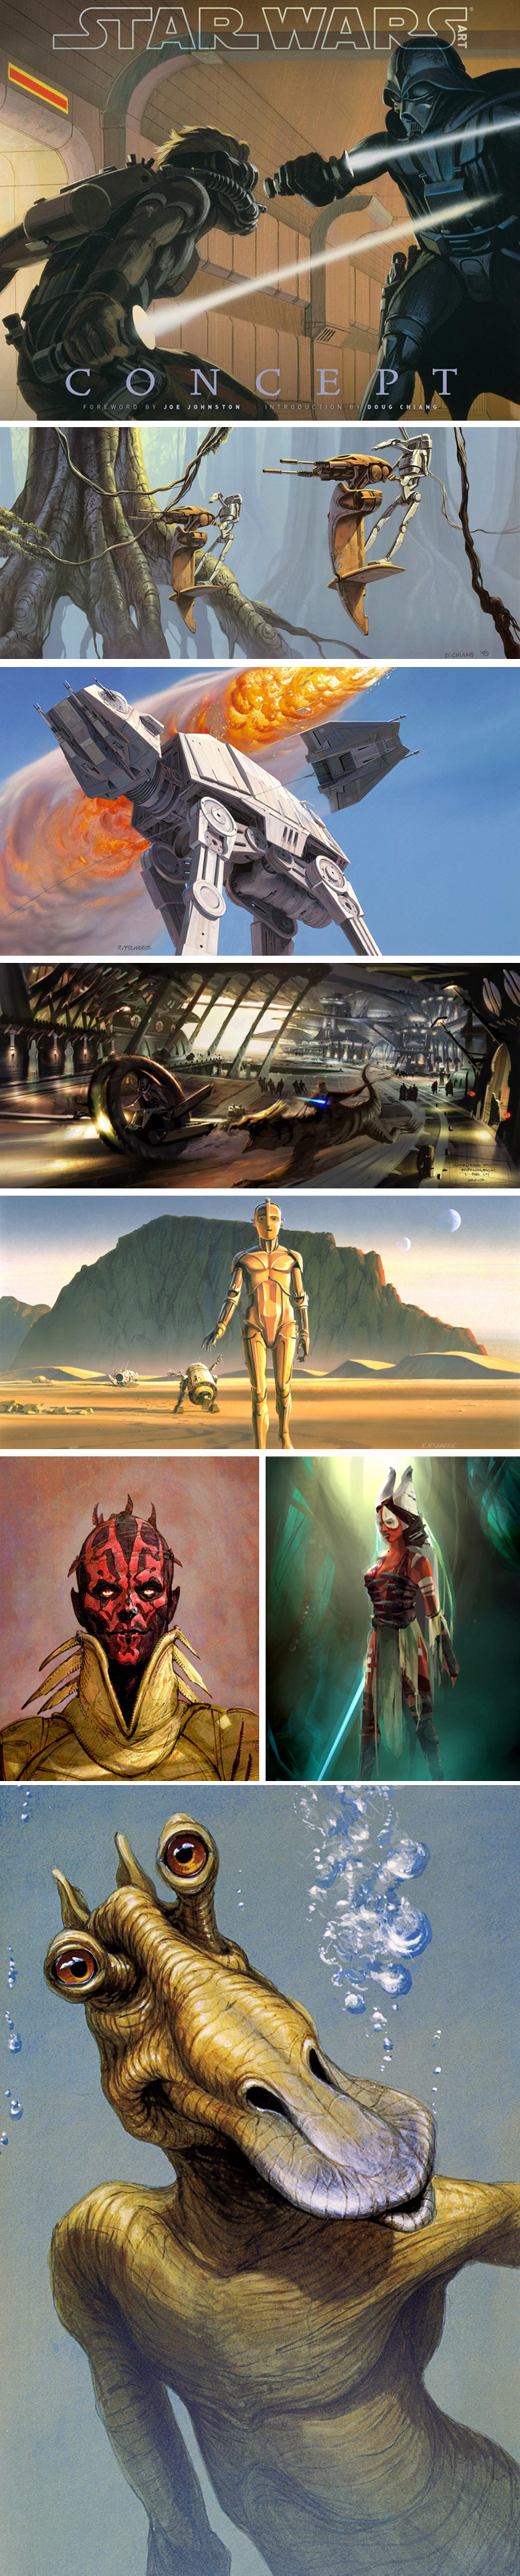 concept-art-star-wars-madrid-academiac10-disney-lucas-cine-animacion